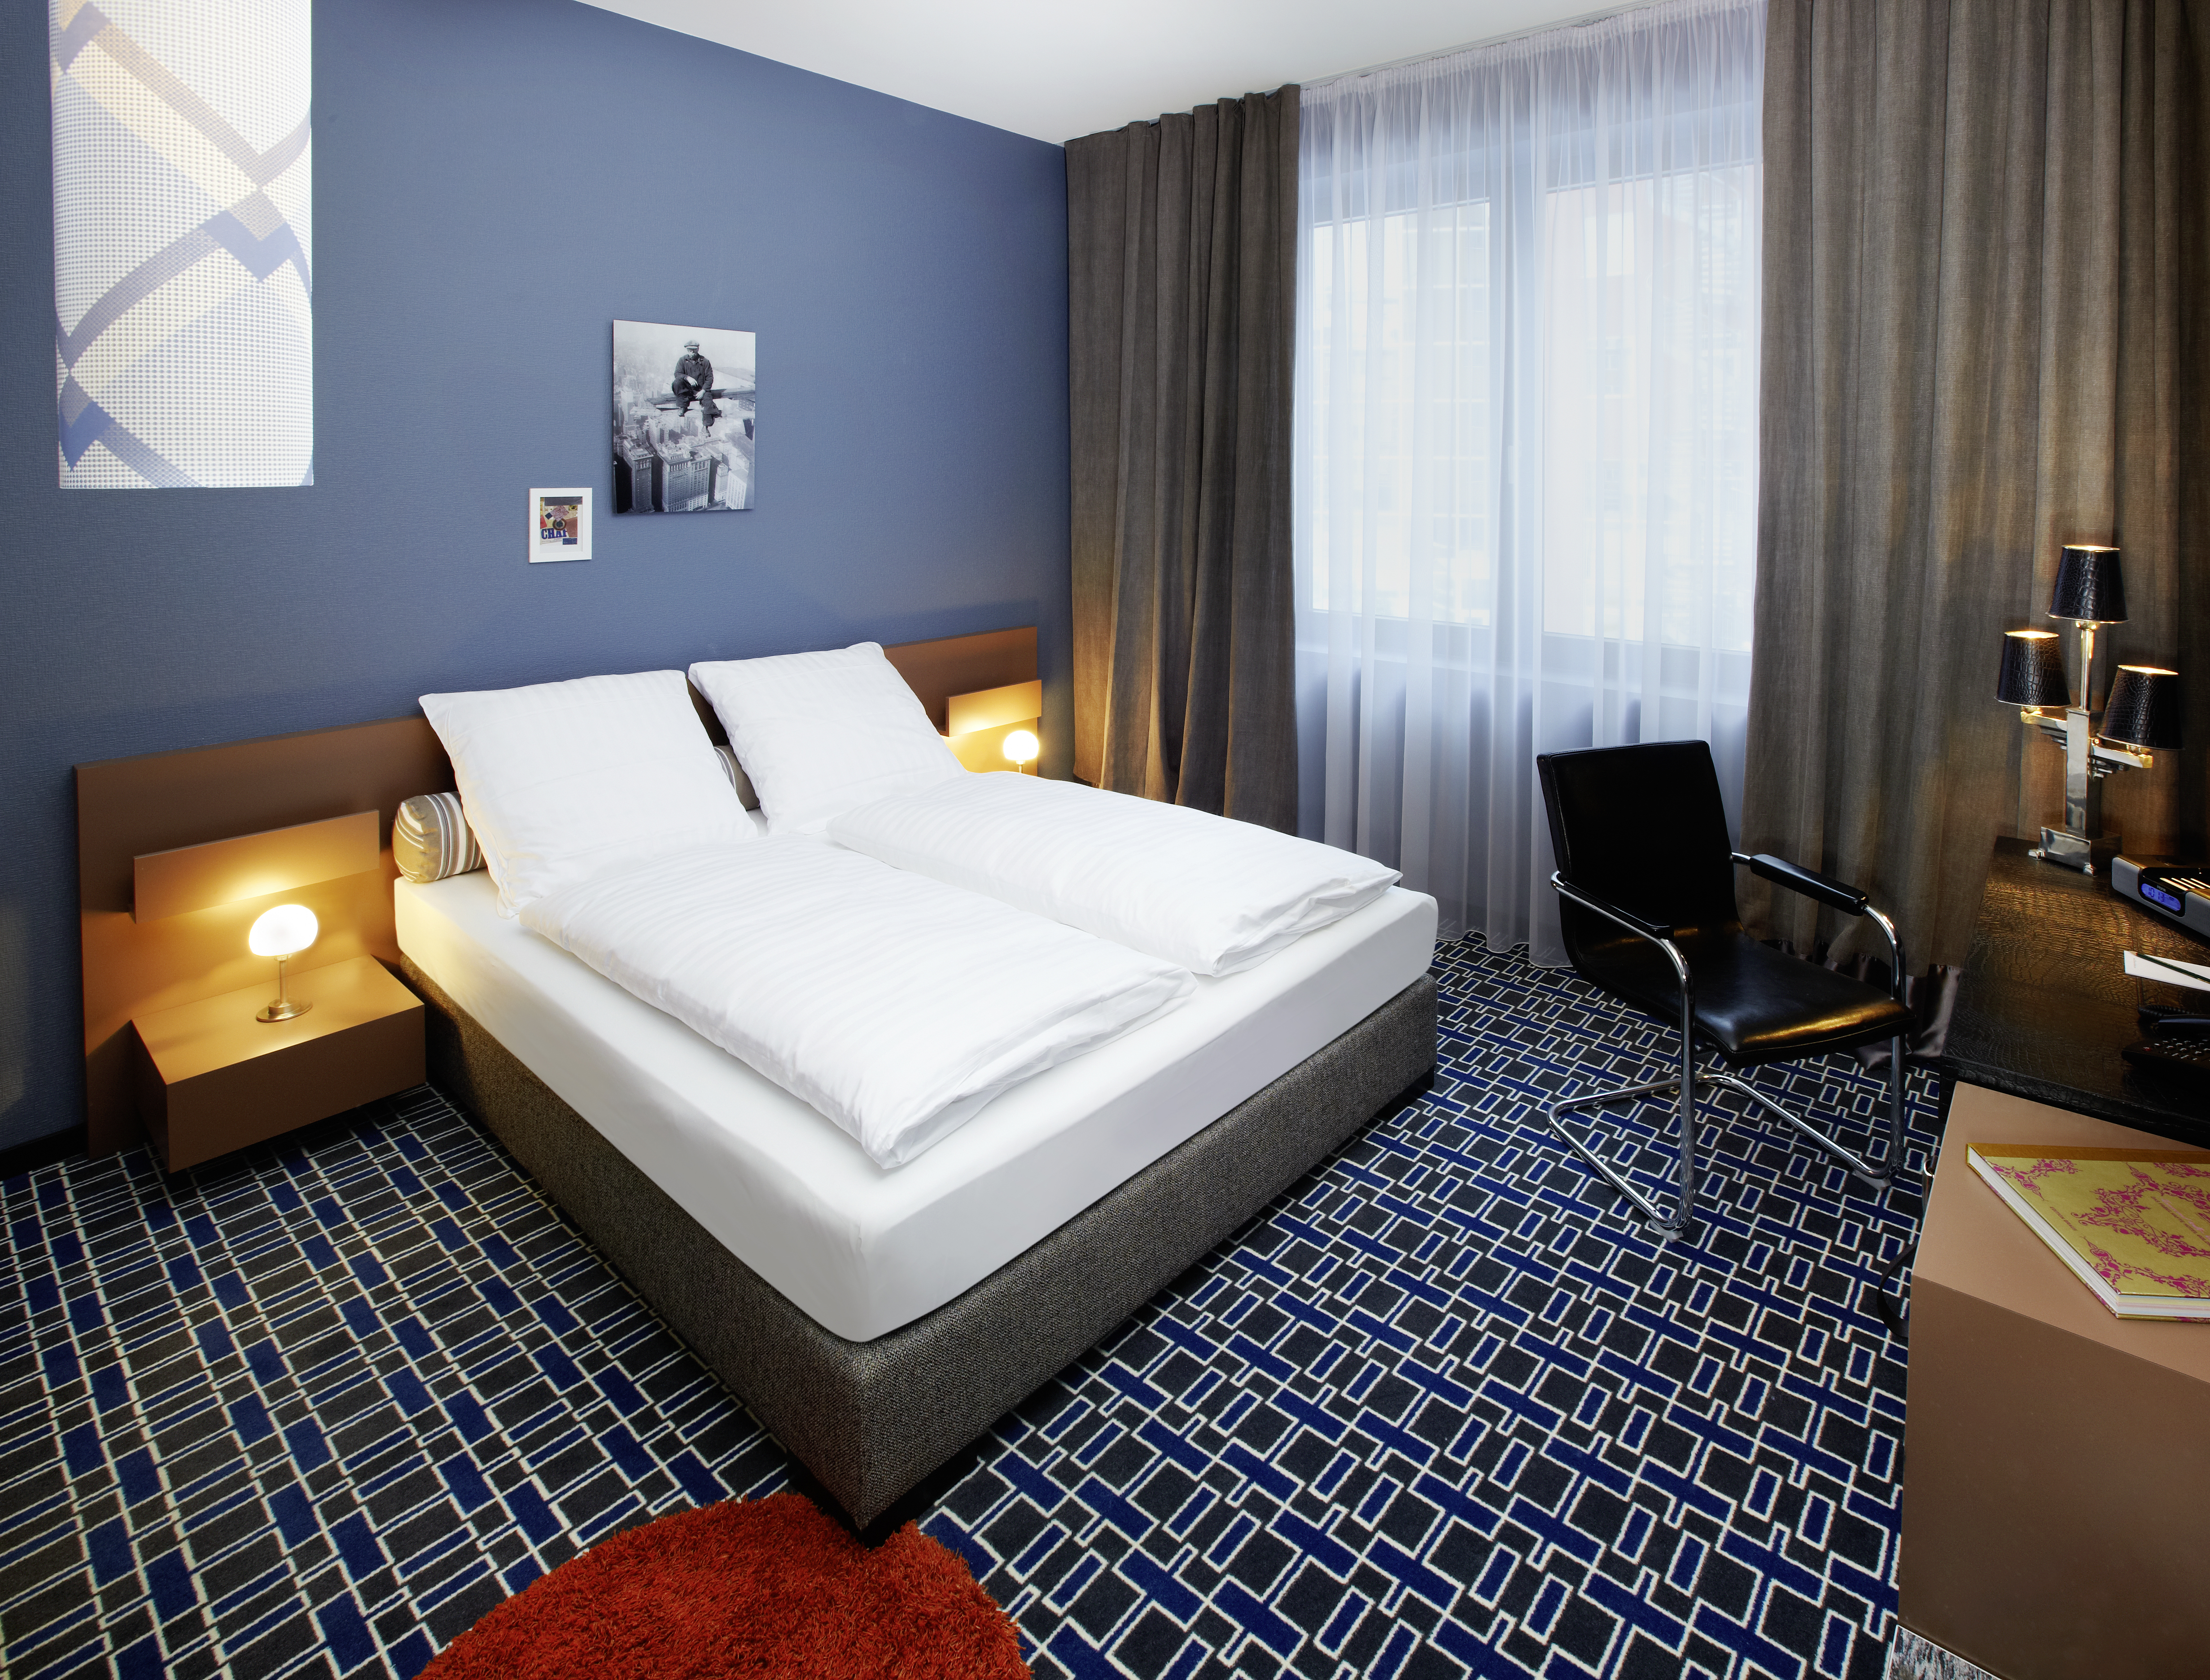 25 Hours Hotel Frankfurt 25hours Hotel Frankfurt By Levi S Review More Than A Handbag